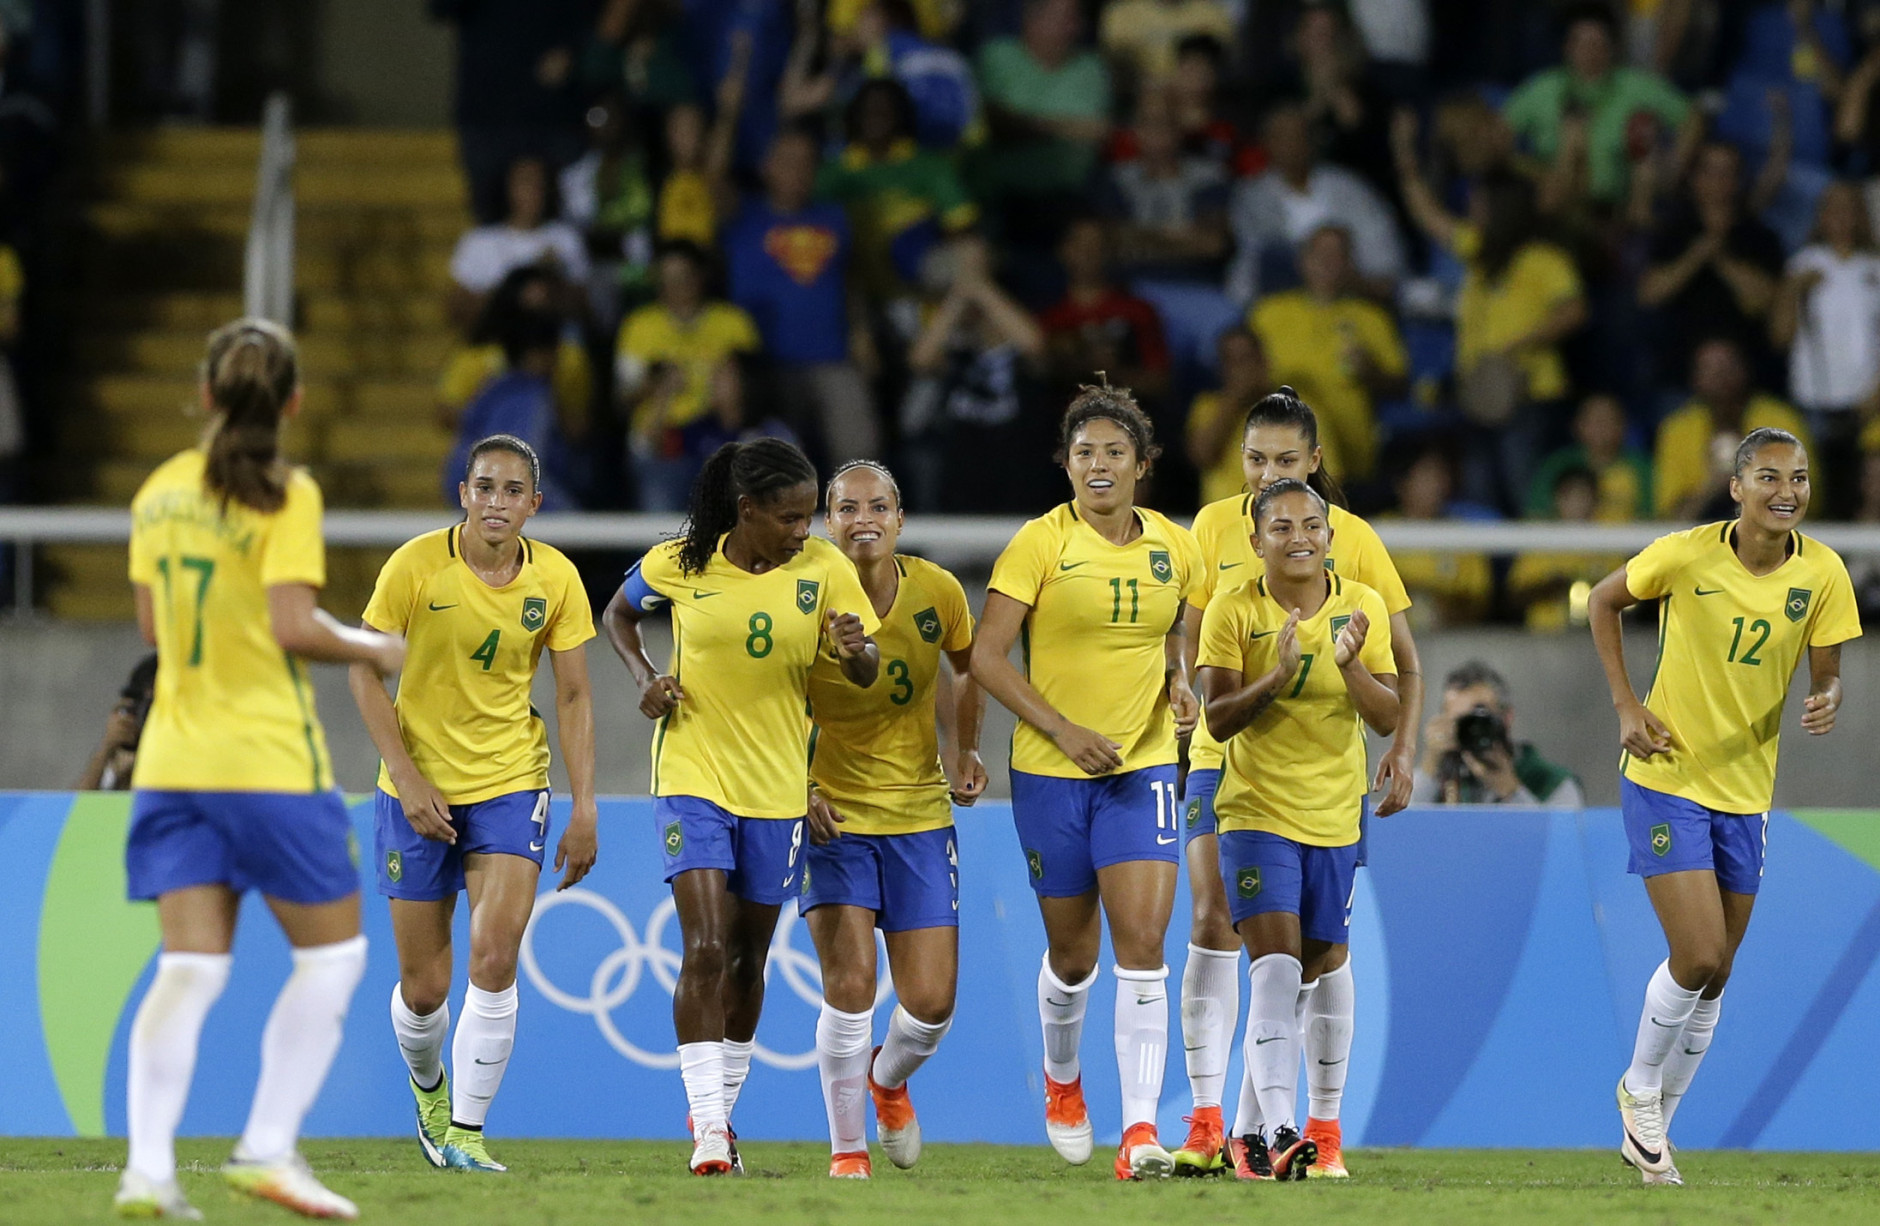 Brazil's Cristiane ( 11 ), celebrates with tam mates after scoring her team's third goal during a Group E match of the women's Olympic football tournament between Brazil and China at the Rio Olympic Stadium in Rio de Janeiro, Brazil, Wednesday, Aug. 3, 2016.(AP Photo/Leo Correa)